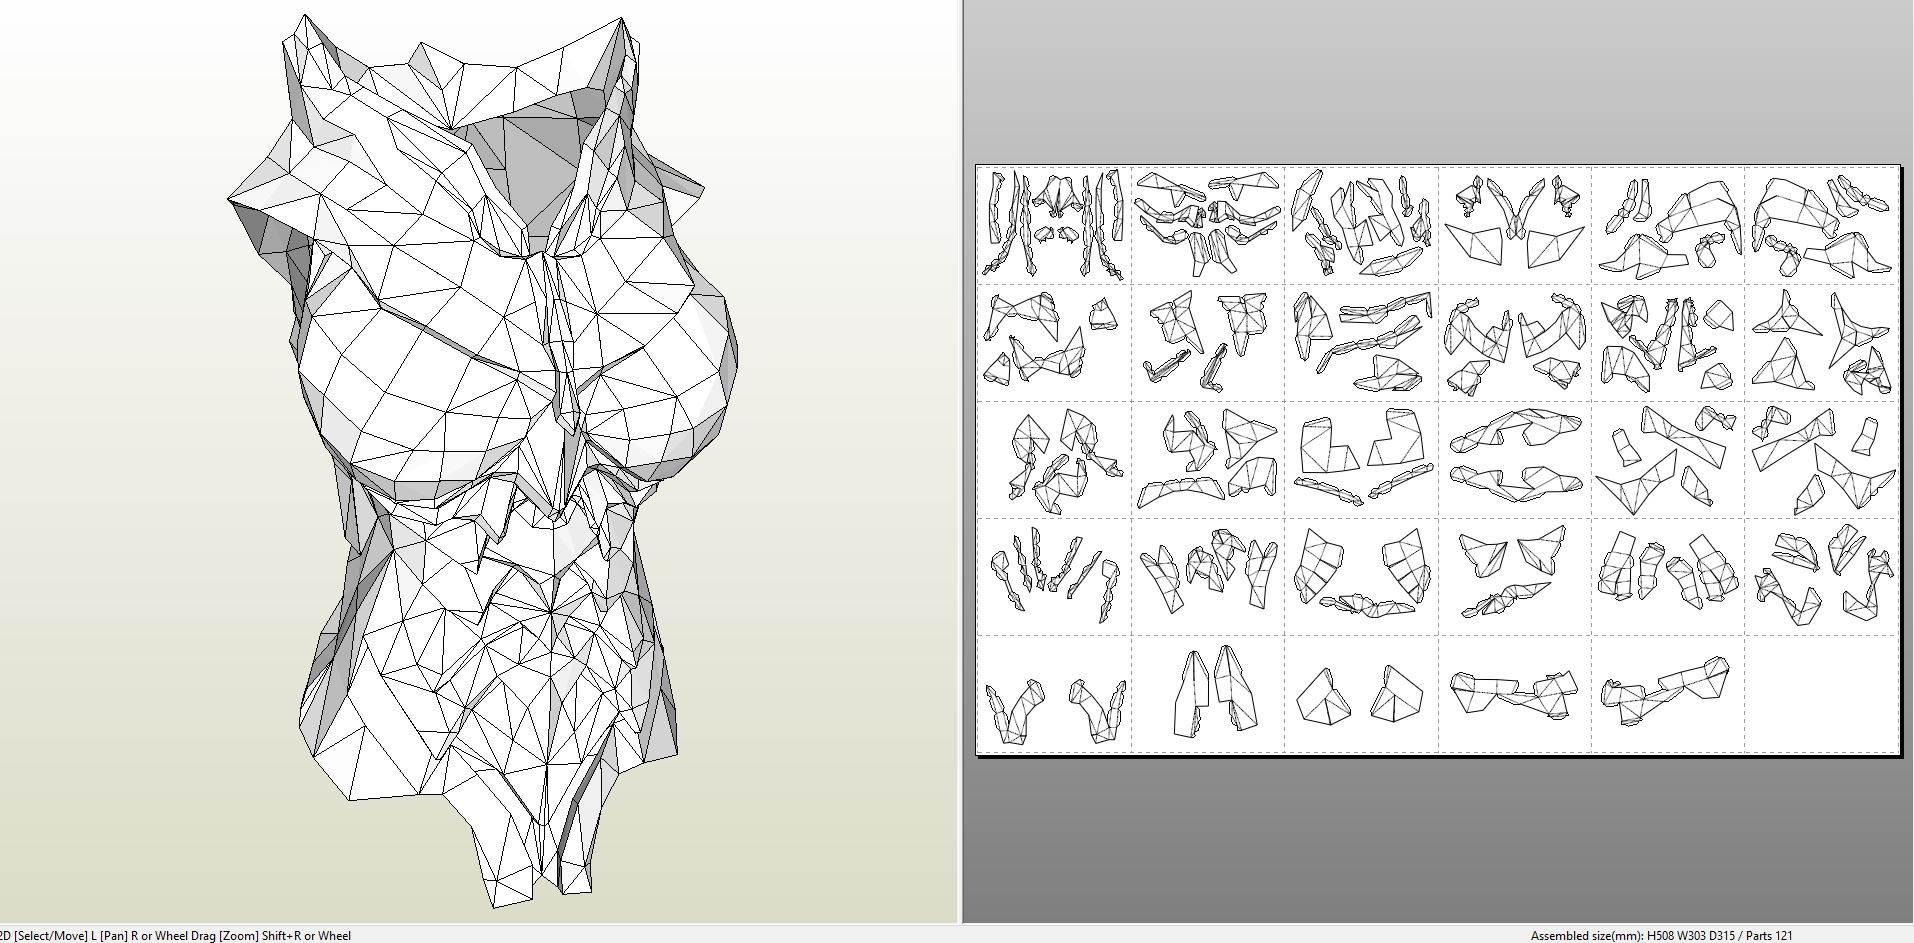 Papercraft  pdo file template for Skyrim – Full Daedric